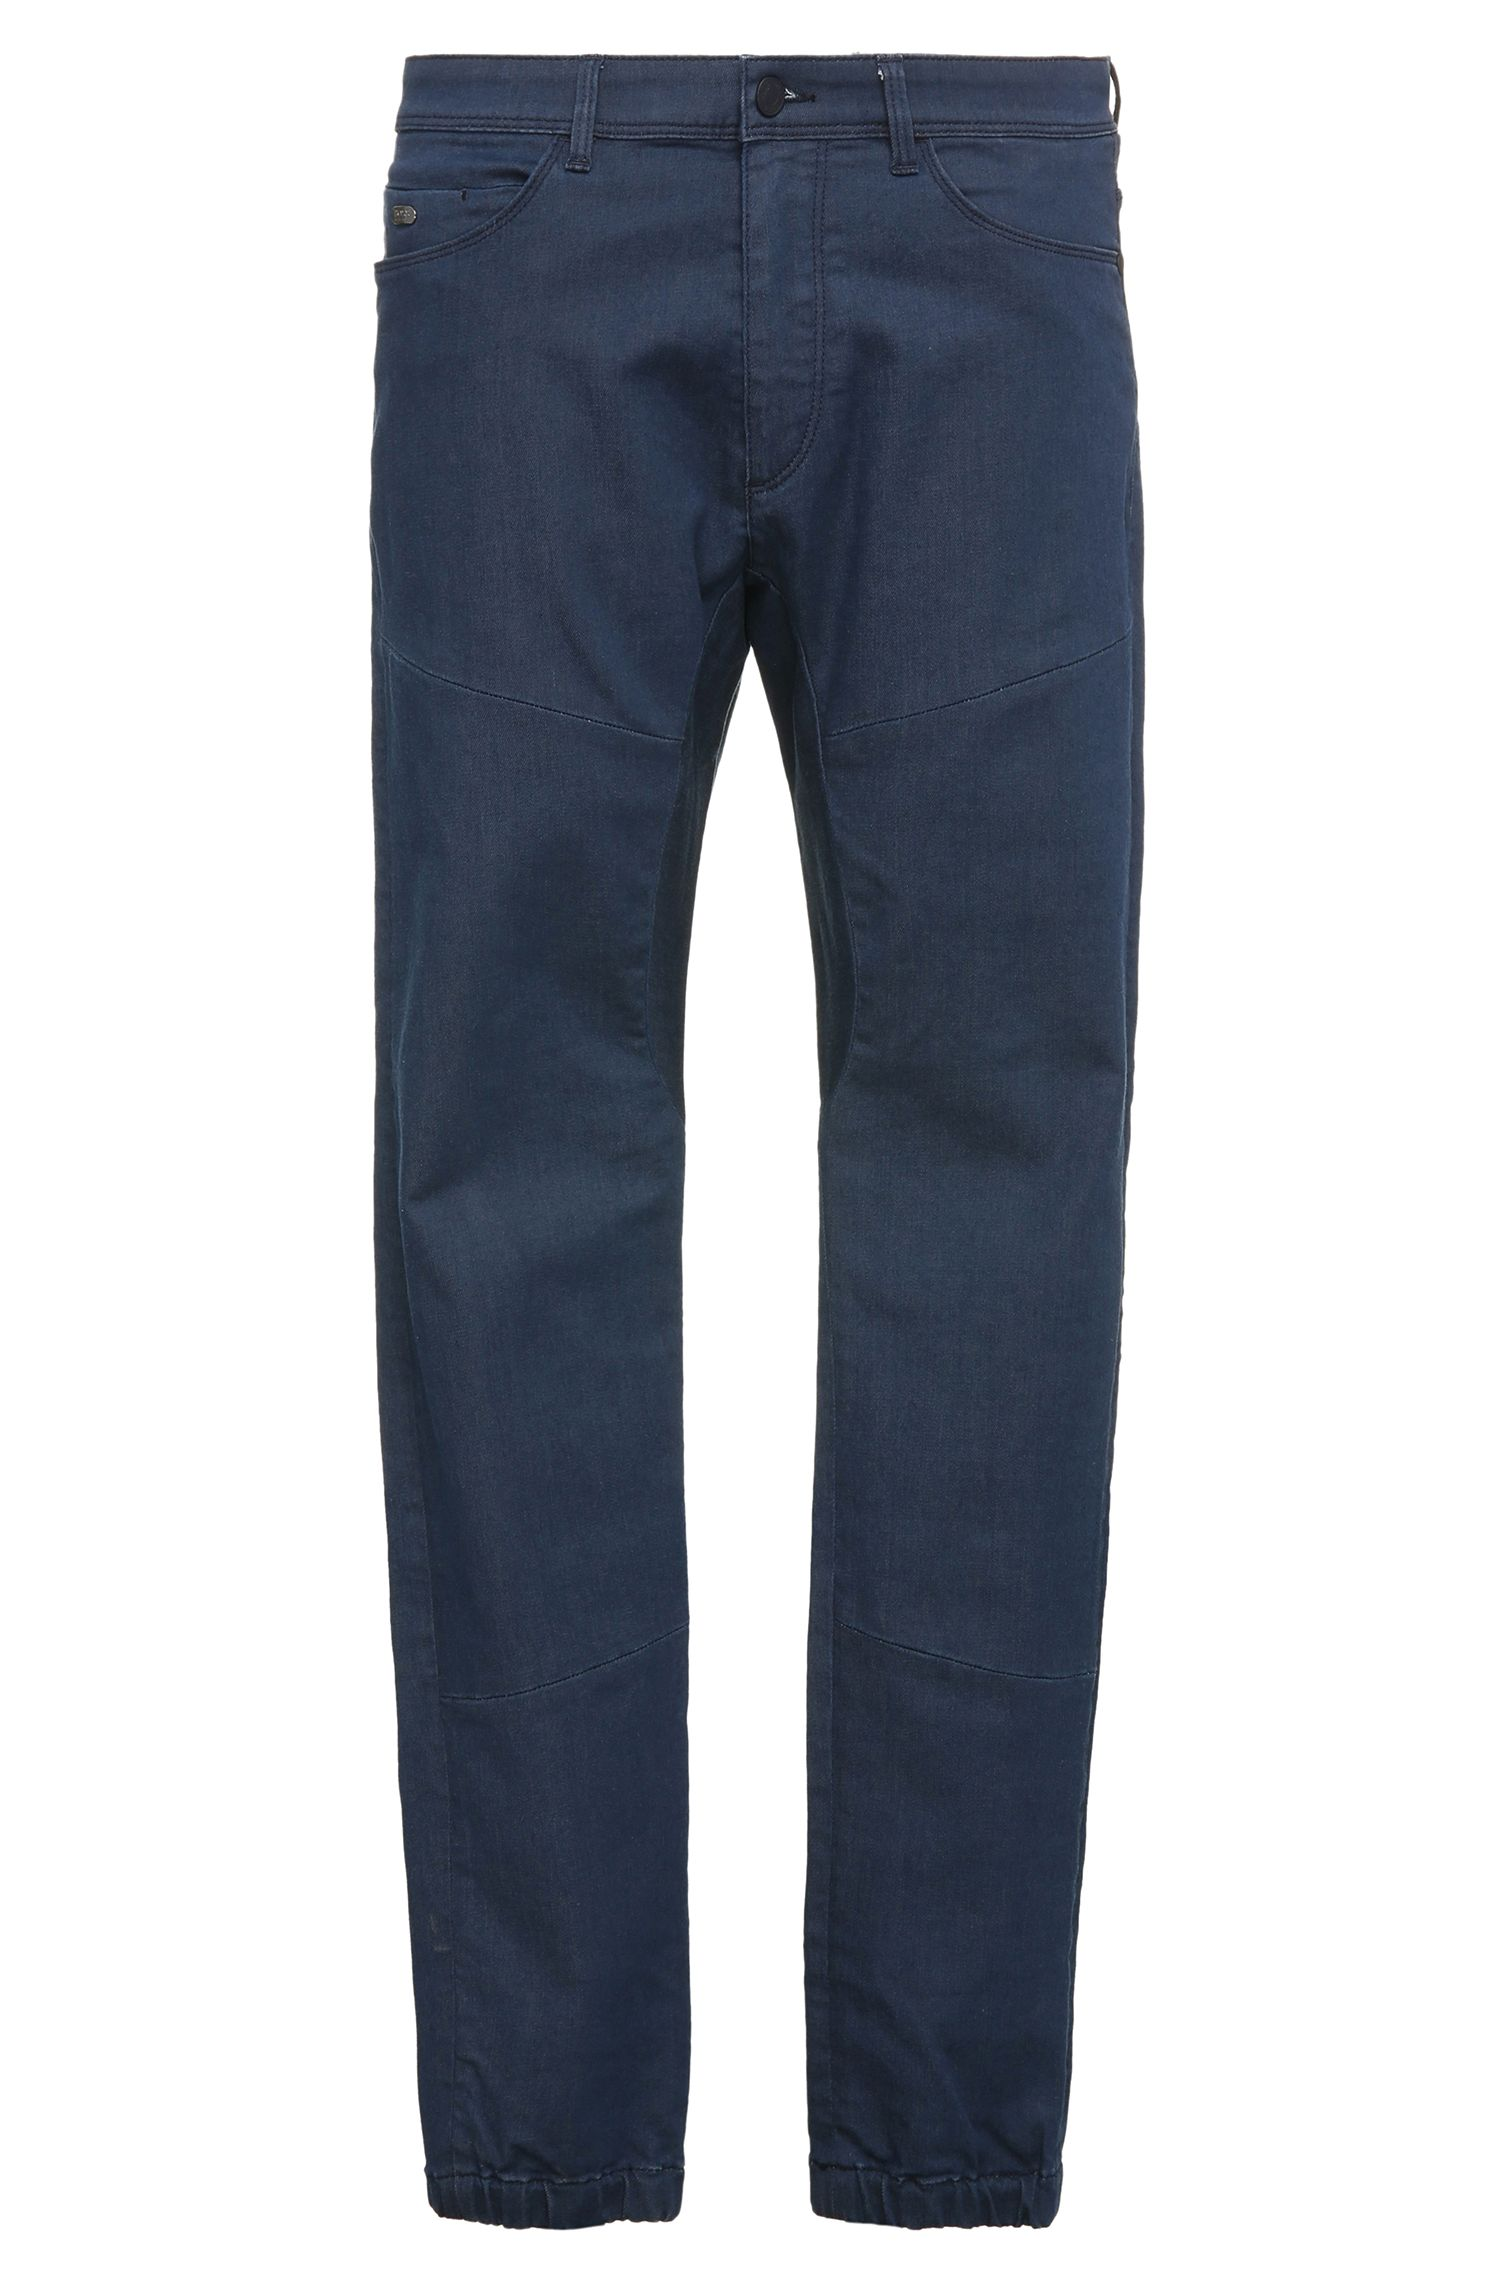 Stretch Cotton Jean, Tapered Fit | Danyel, Turquoise